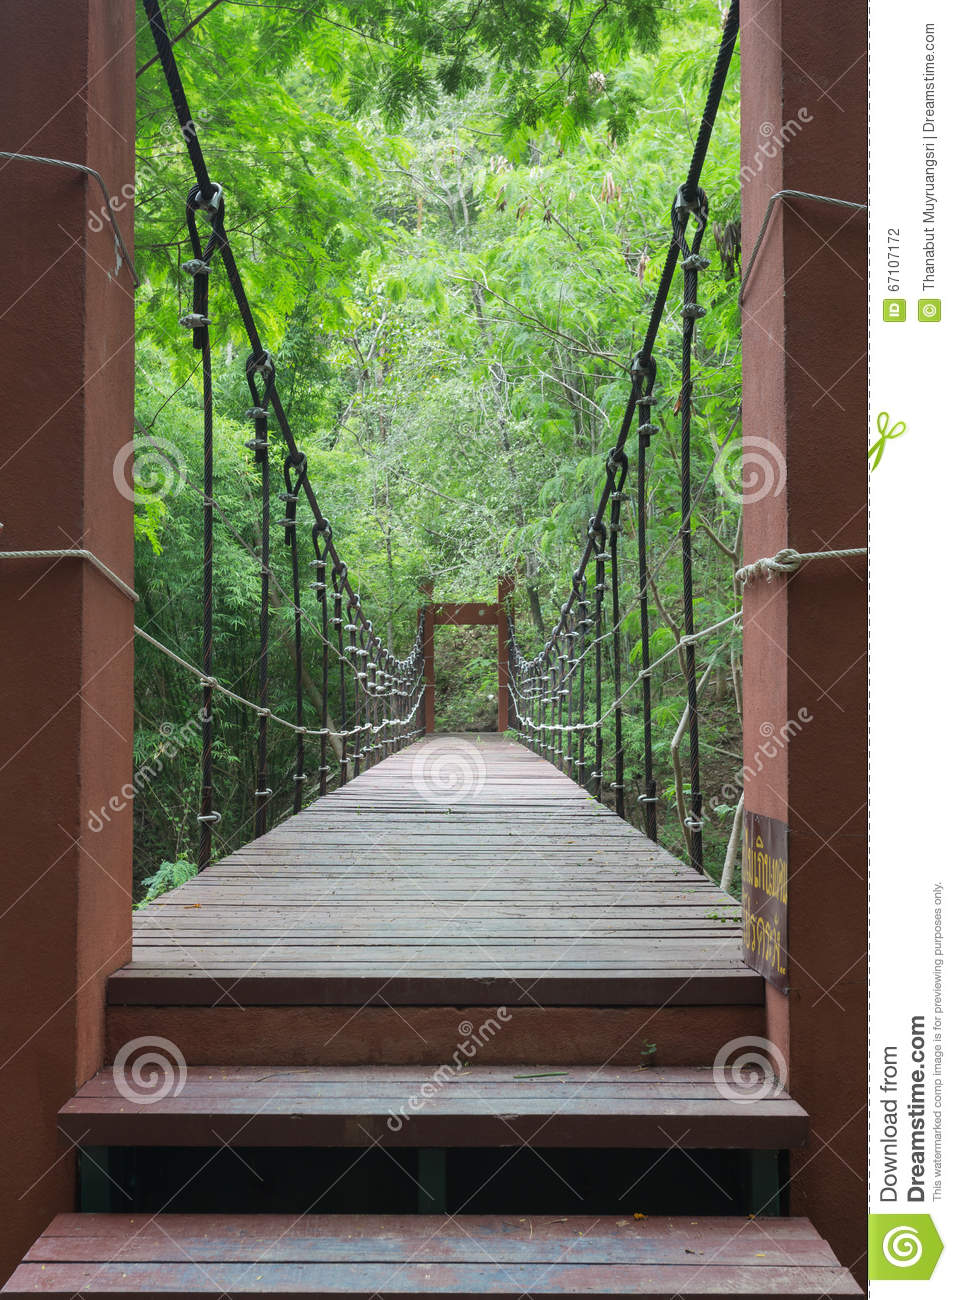 Wire Rope Bridge Stock Photo - Image: 67107172